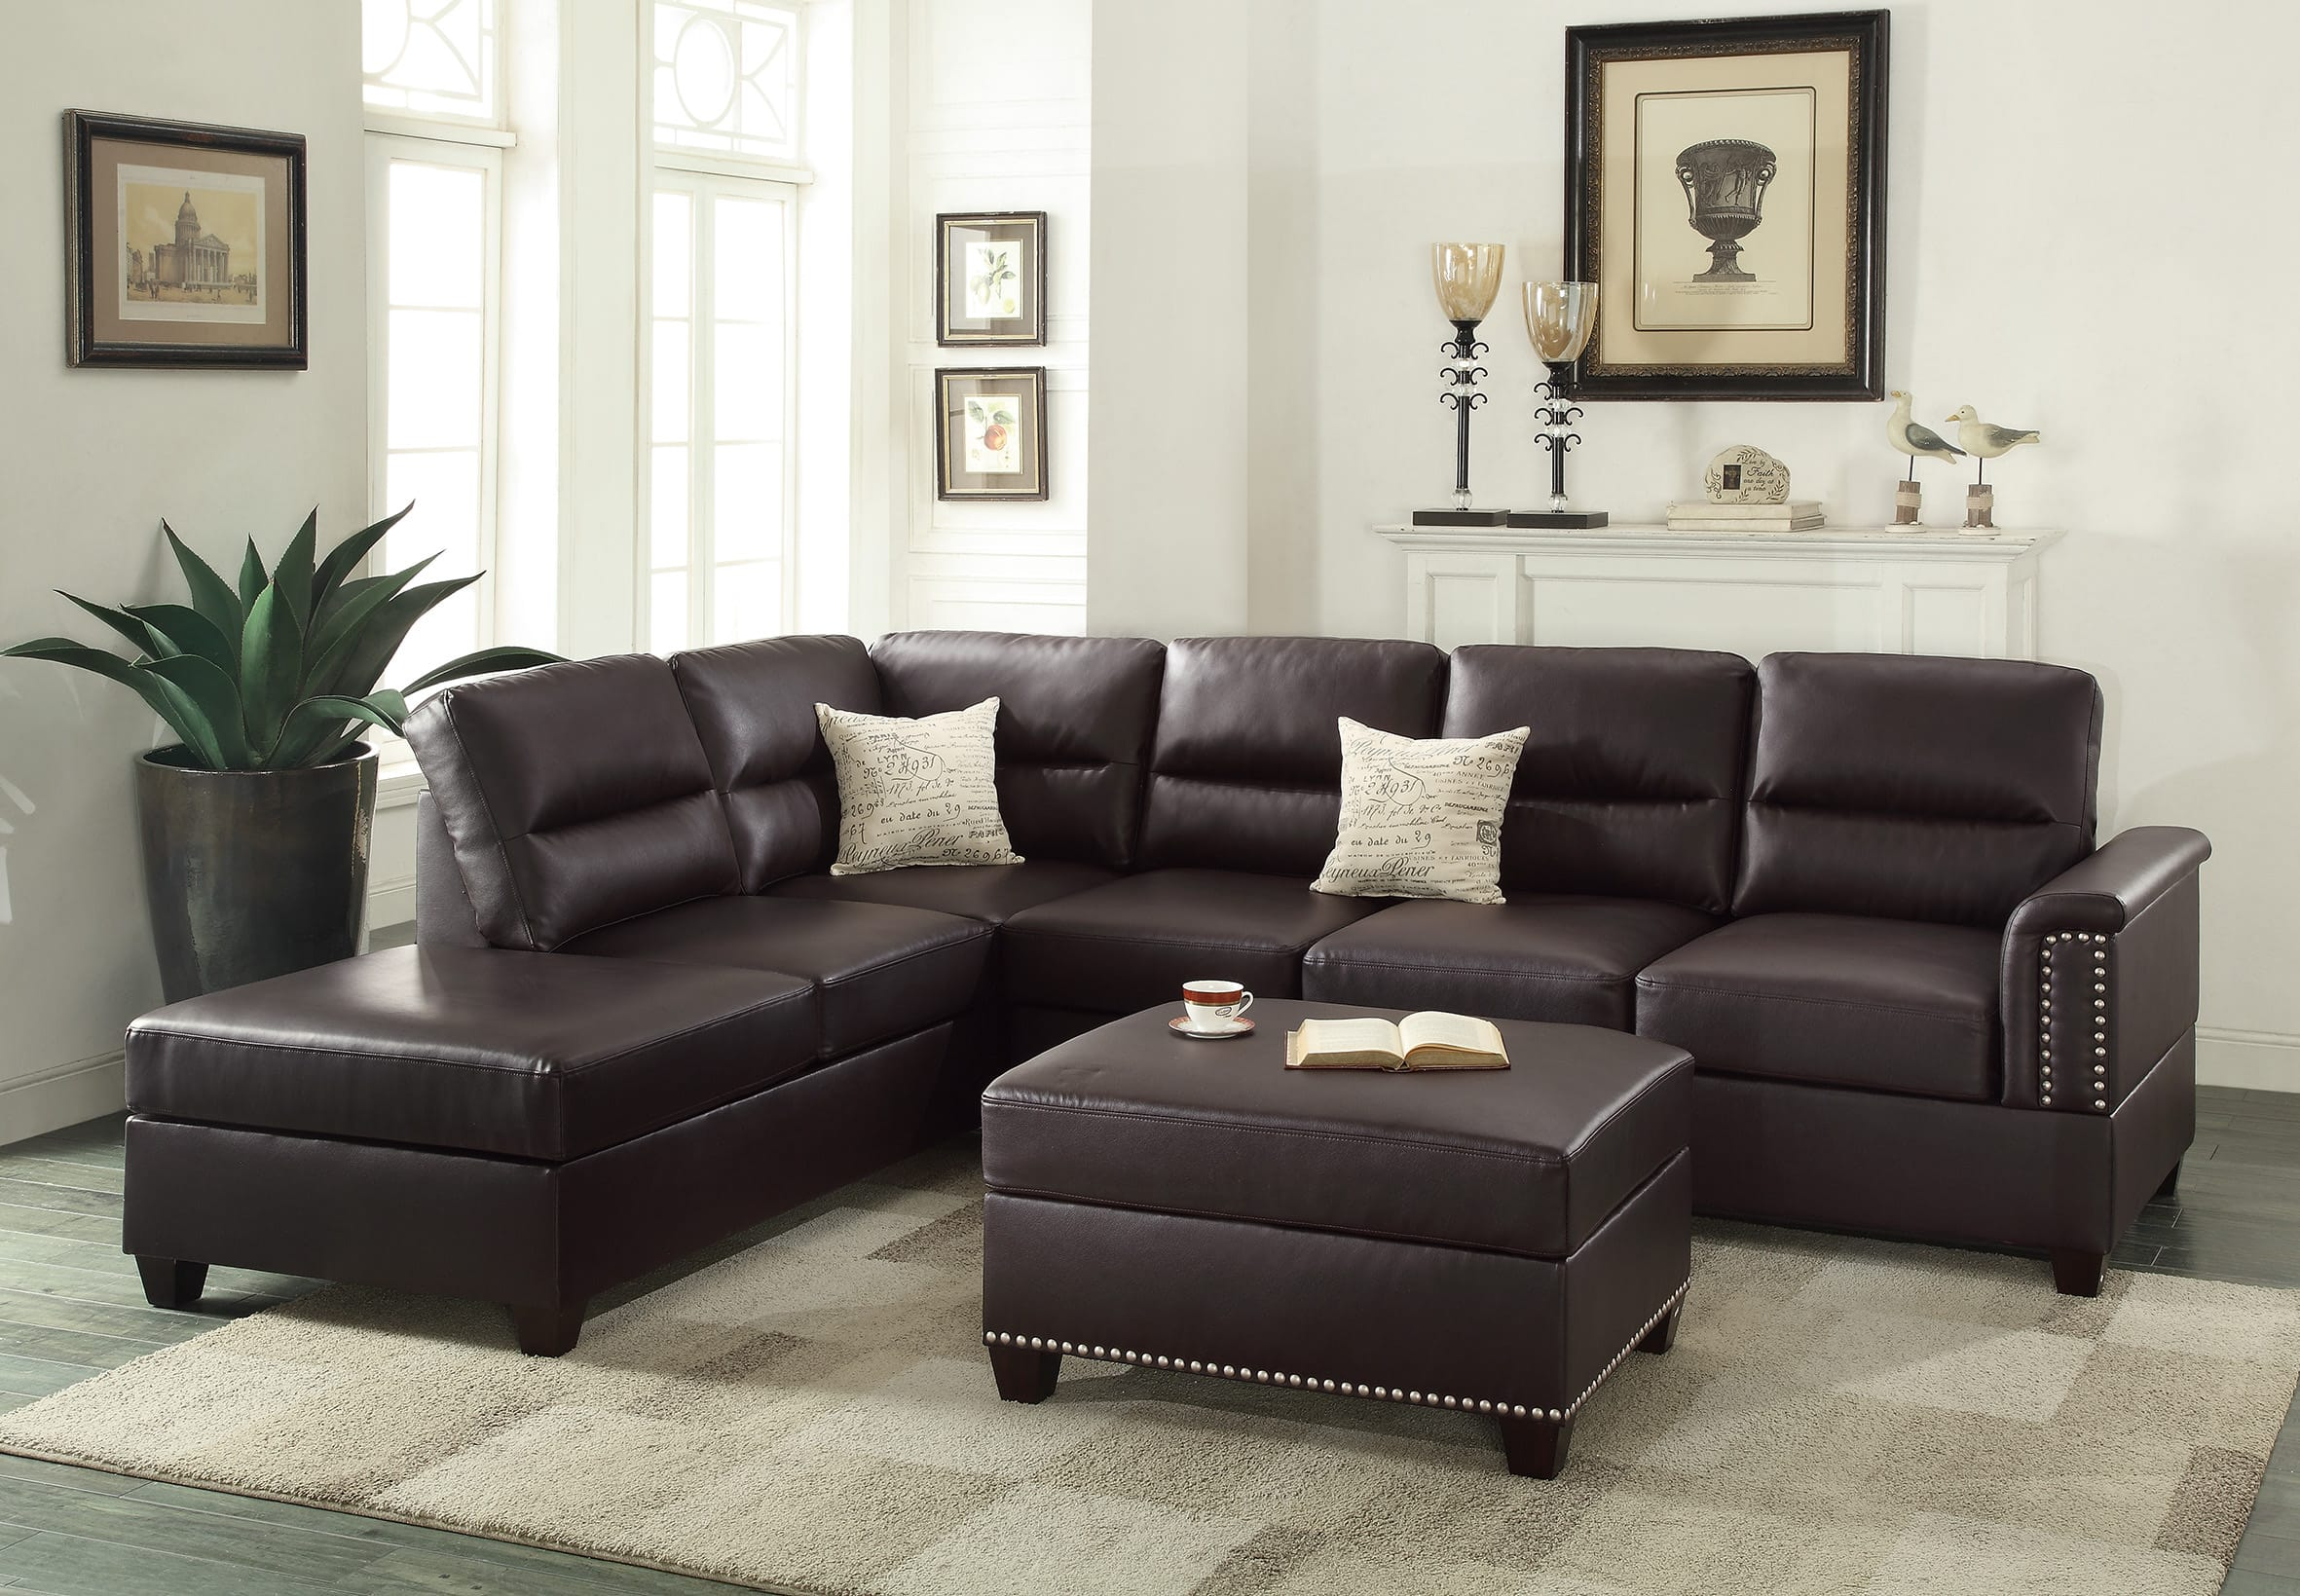 Enjoyable F7609 Espresso 2 Pcs Sectional Sofa Set By Poundex Inzonedesignstudio Interior Chair Design Inzonedesignstudiocom